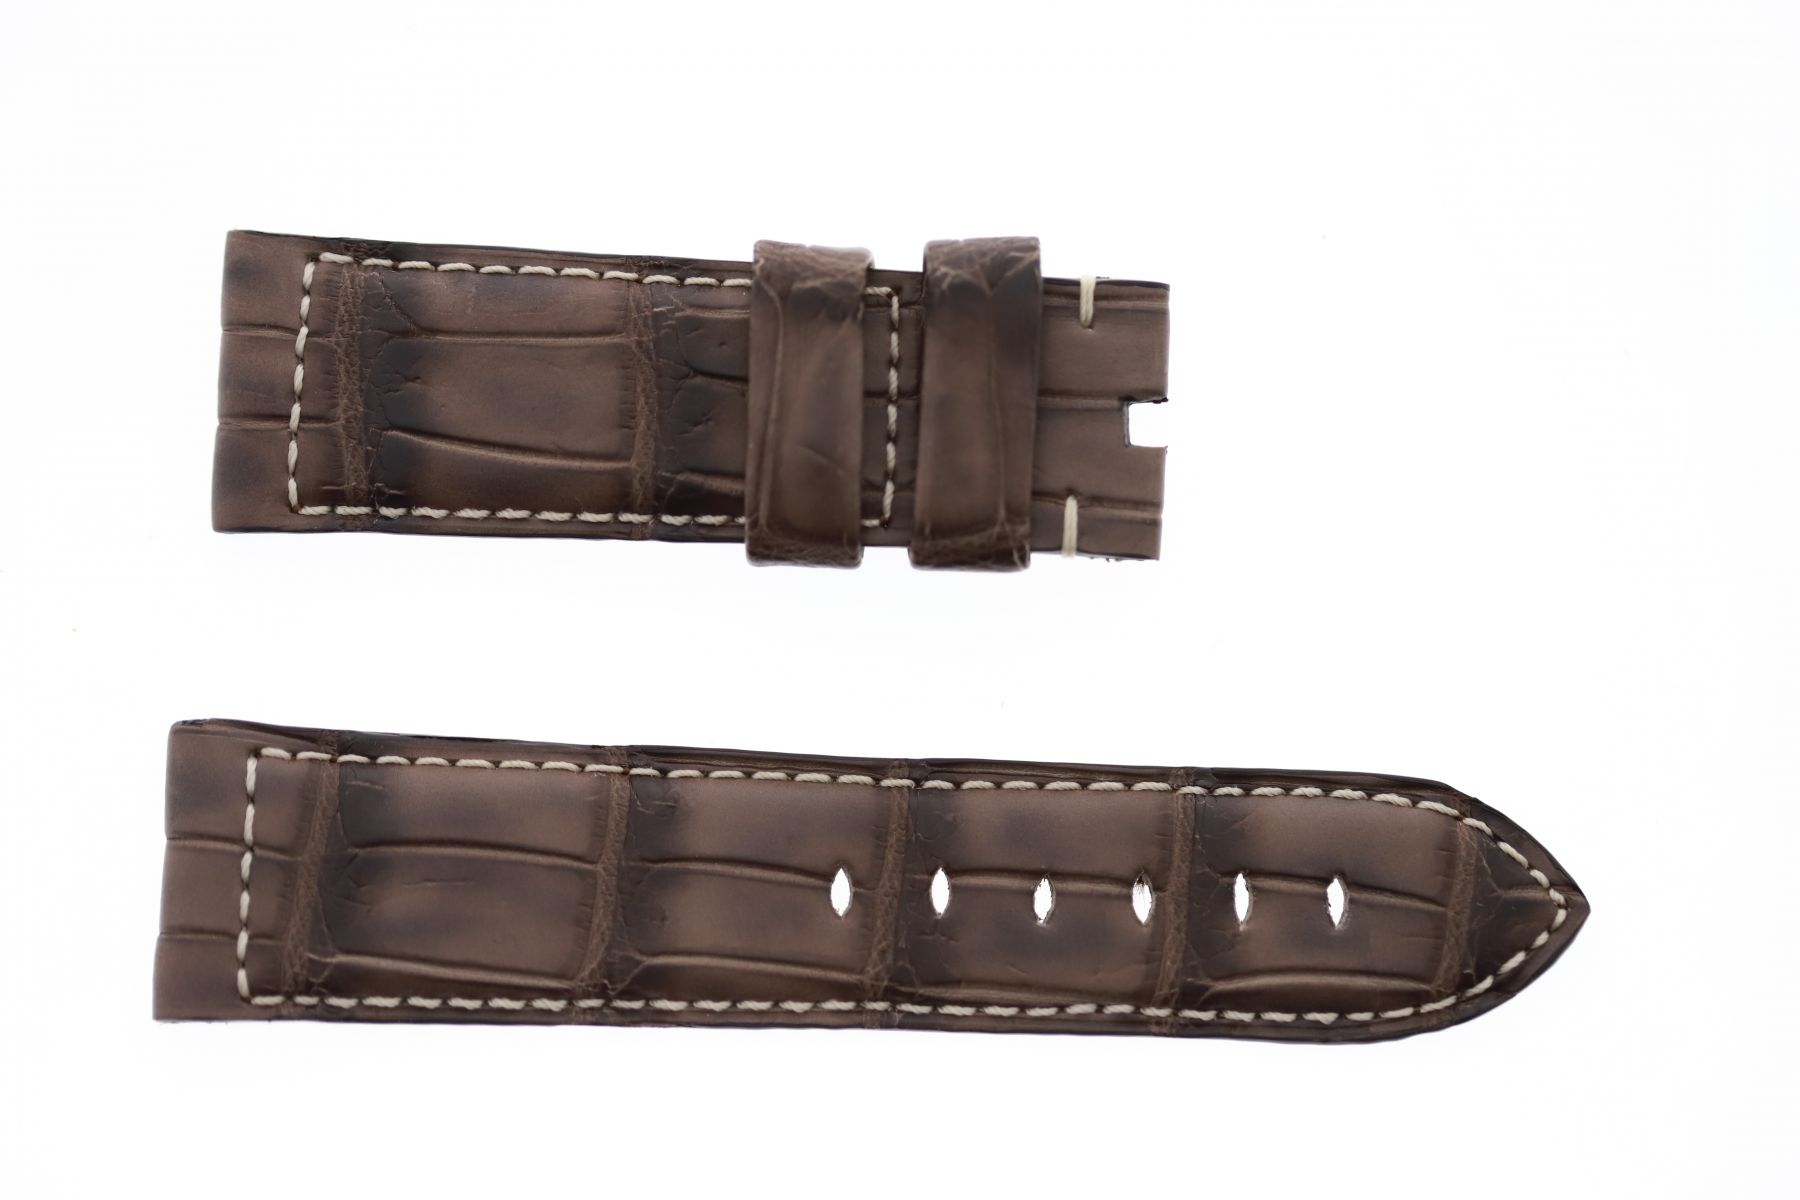 Vintage Matte Brown Wood Alligator leather strap 24mm Panerai style